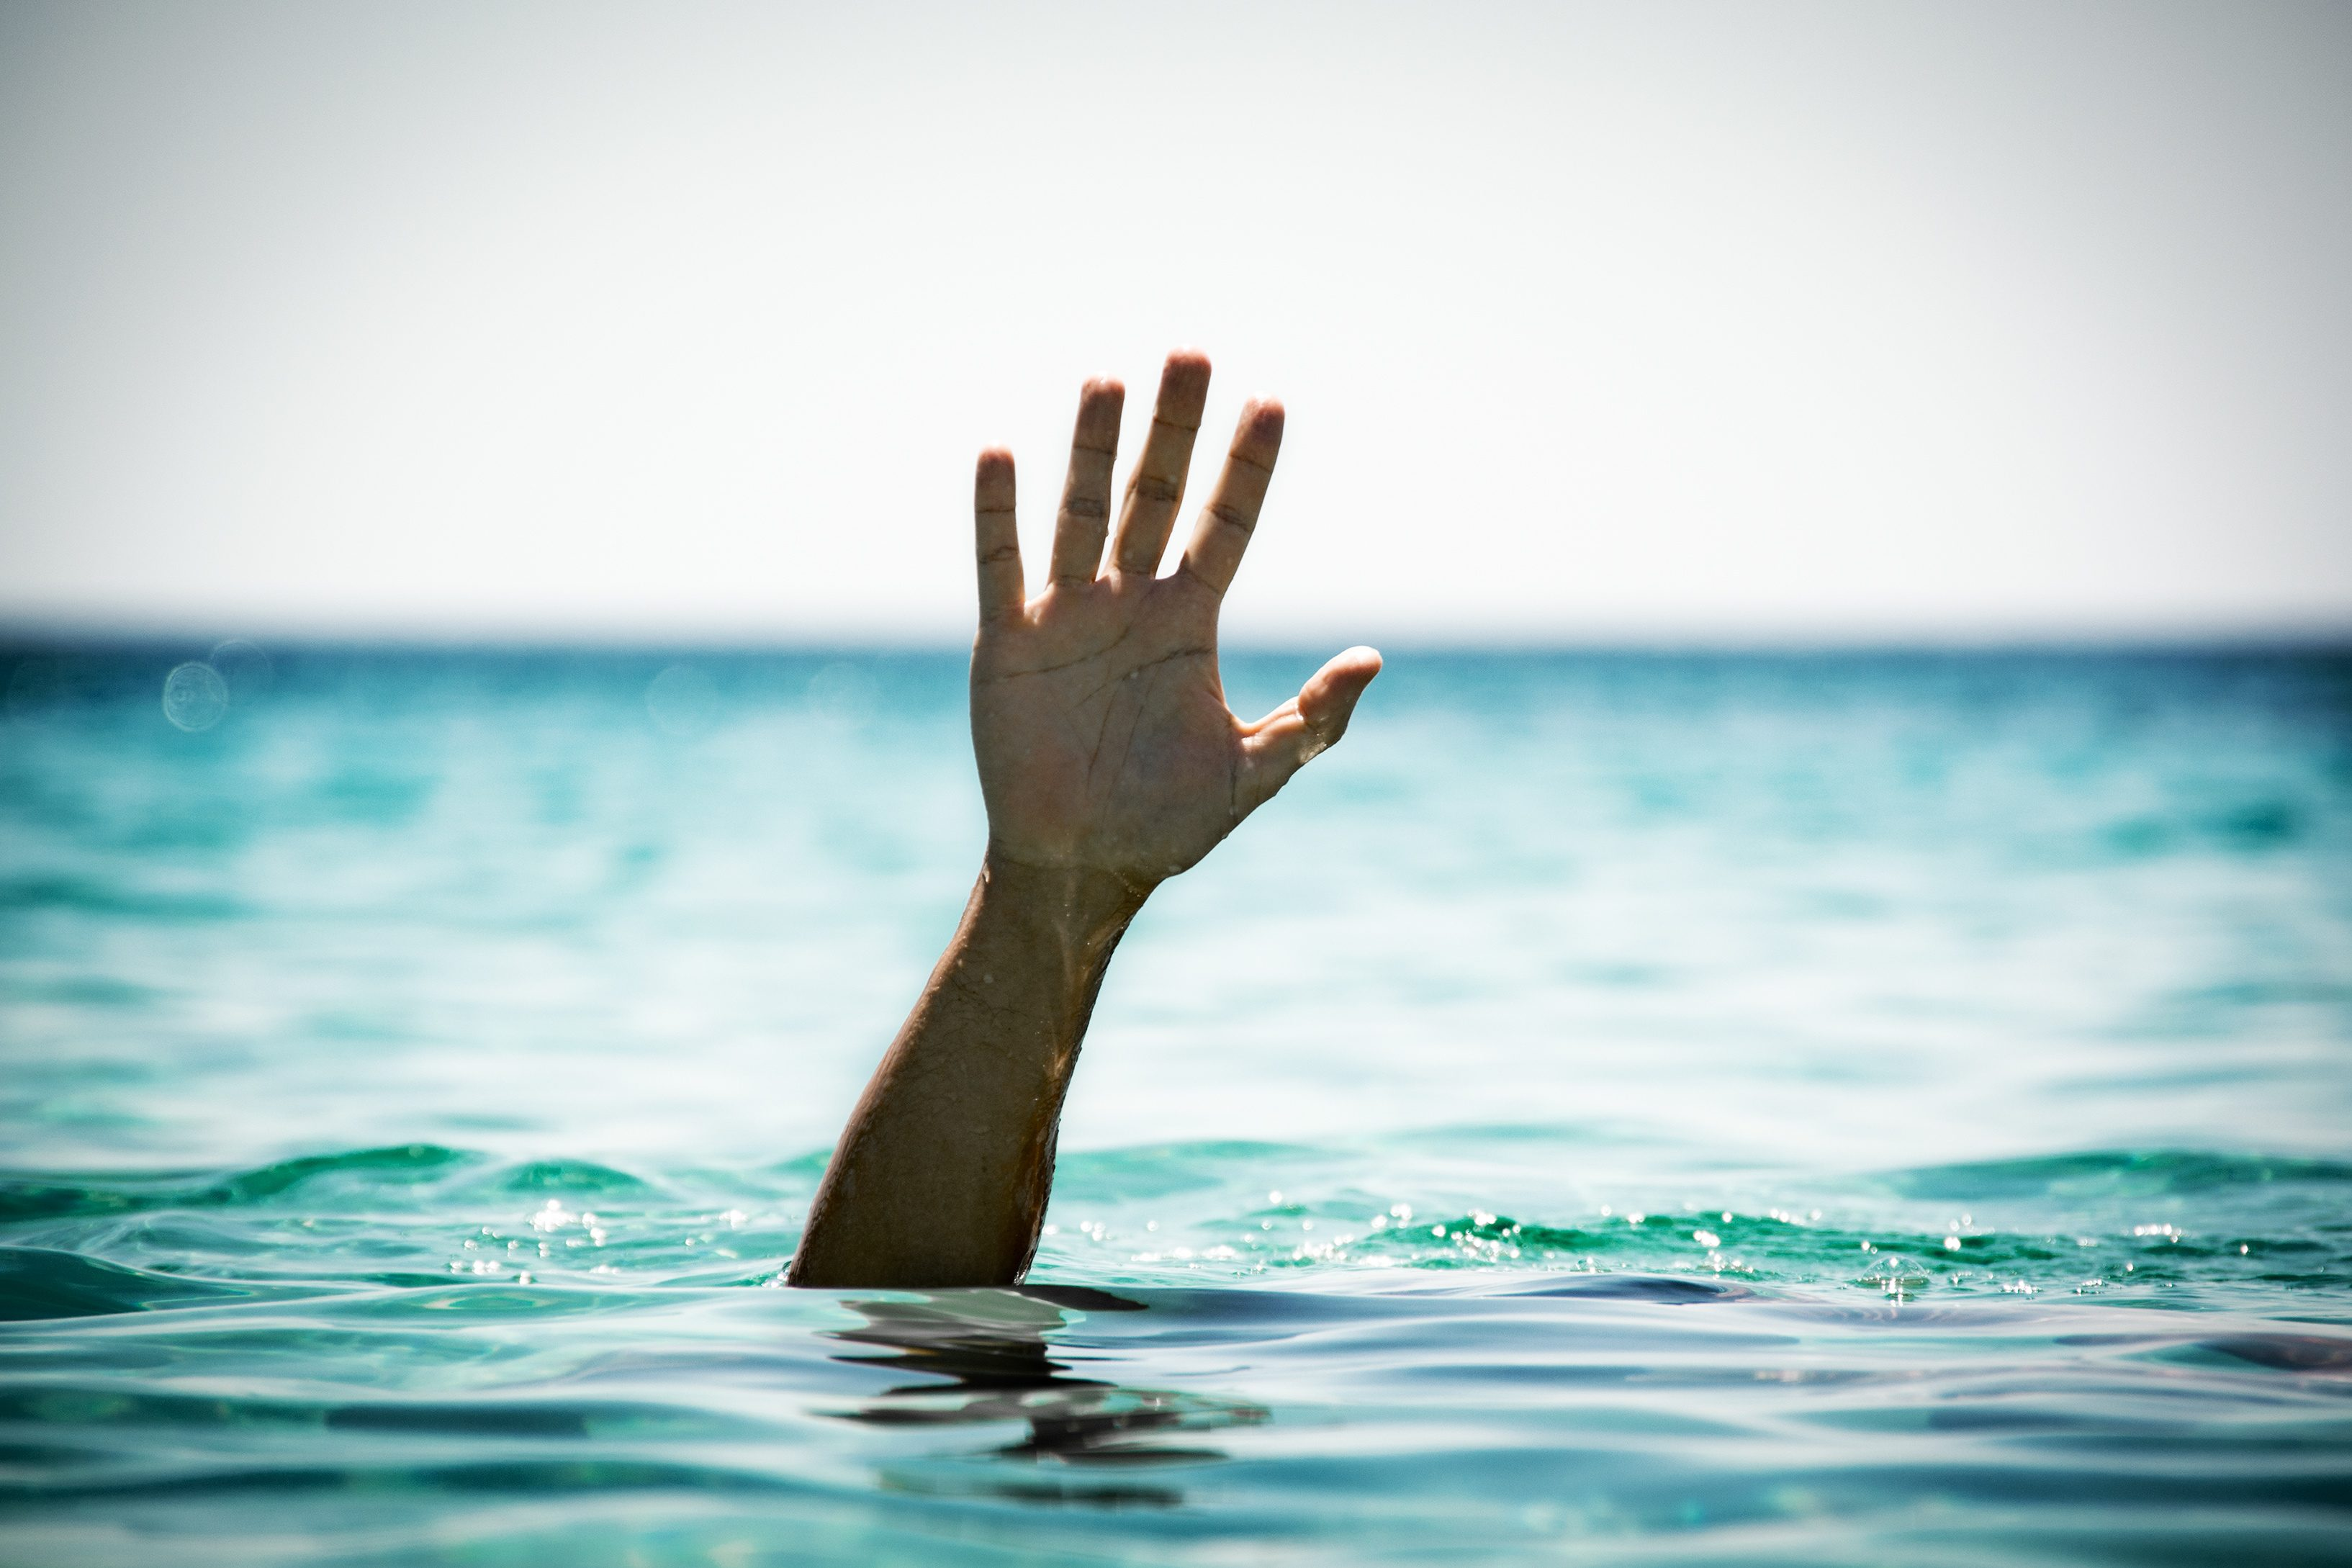 Drowning causes 3,000 deaths annually